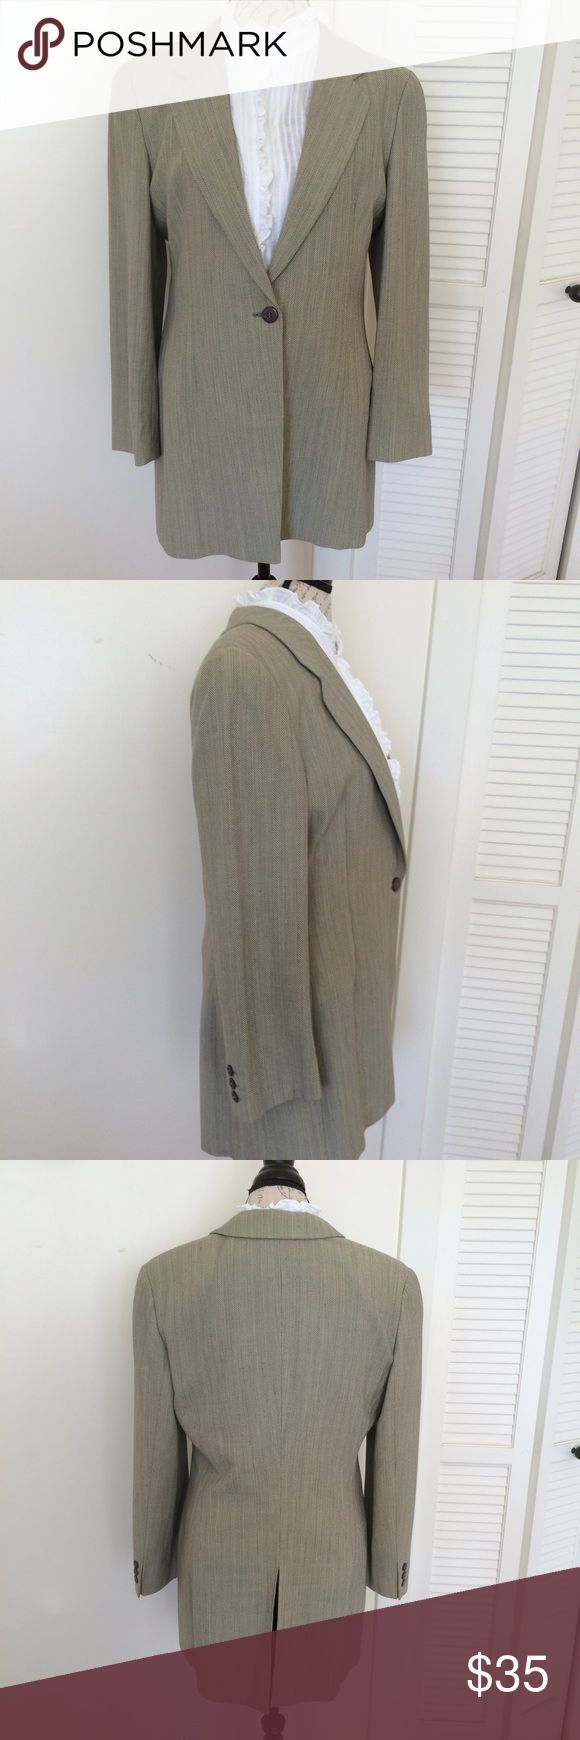 """Vintage Joan & David light wool blazer Joan & David 100% light wool blazer. Styled as a """"riding jacket"""". Gently worn, in excellent condition. This blazer is perfectly tailored and is high quality, with a back slit, single button. Made in Italy. Joan & David Jackets & Coats Blazers"""